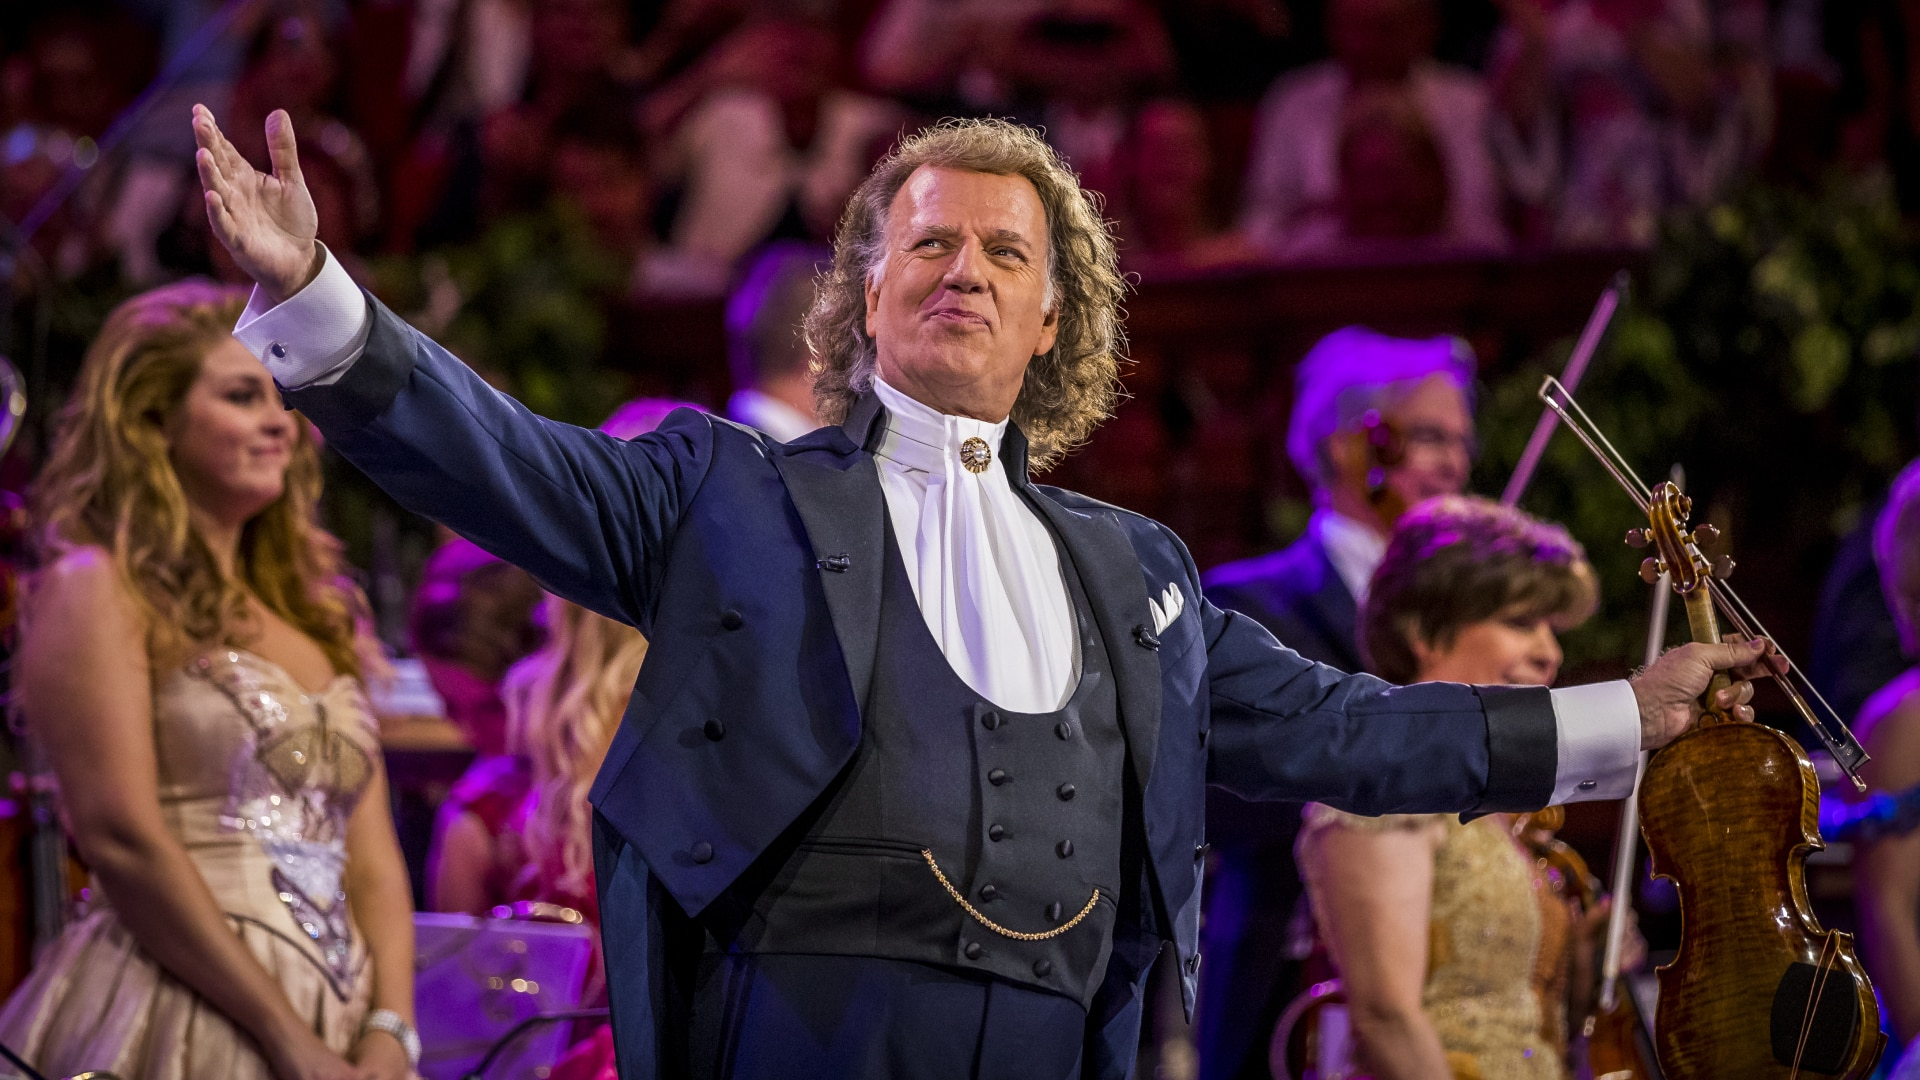 Ep 1 Andre Rieu: Christmas Down Under - Live From Sydney